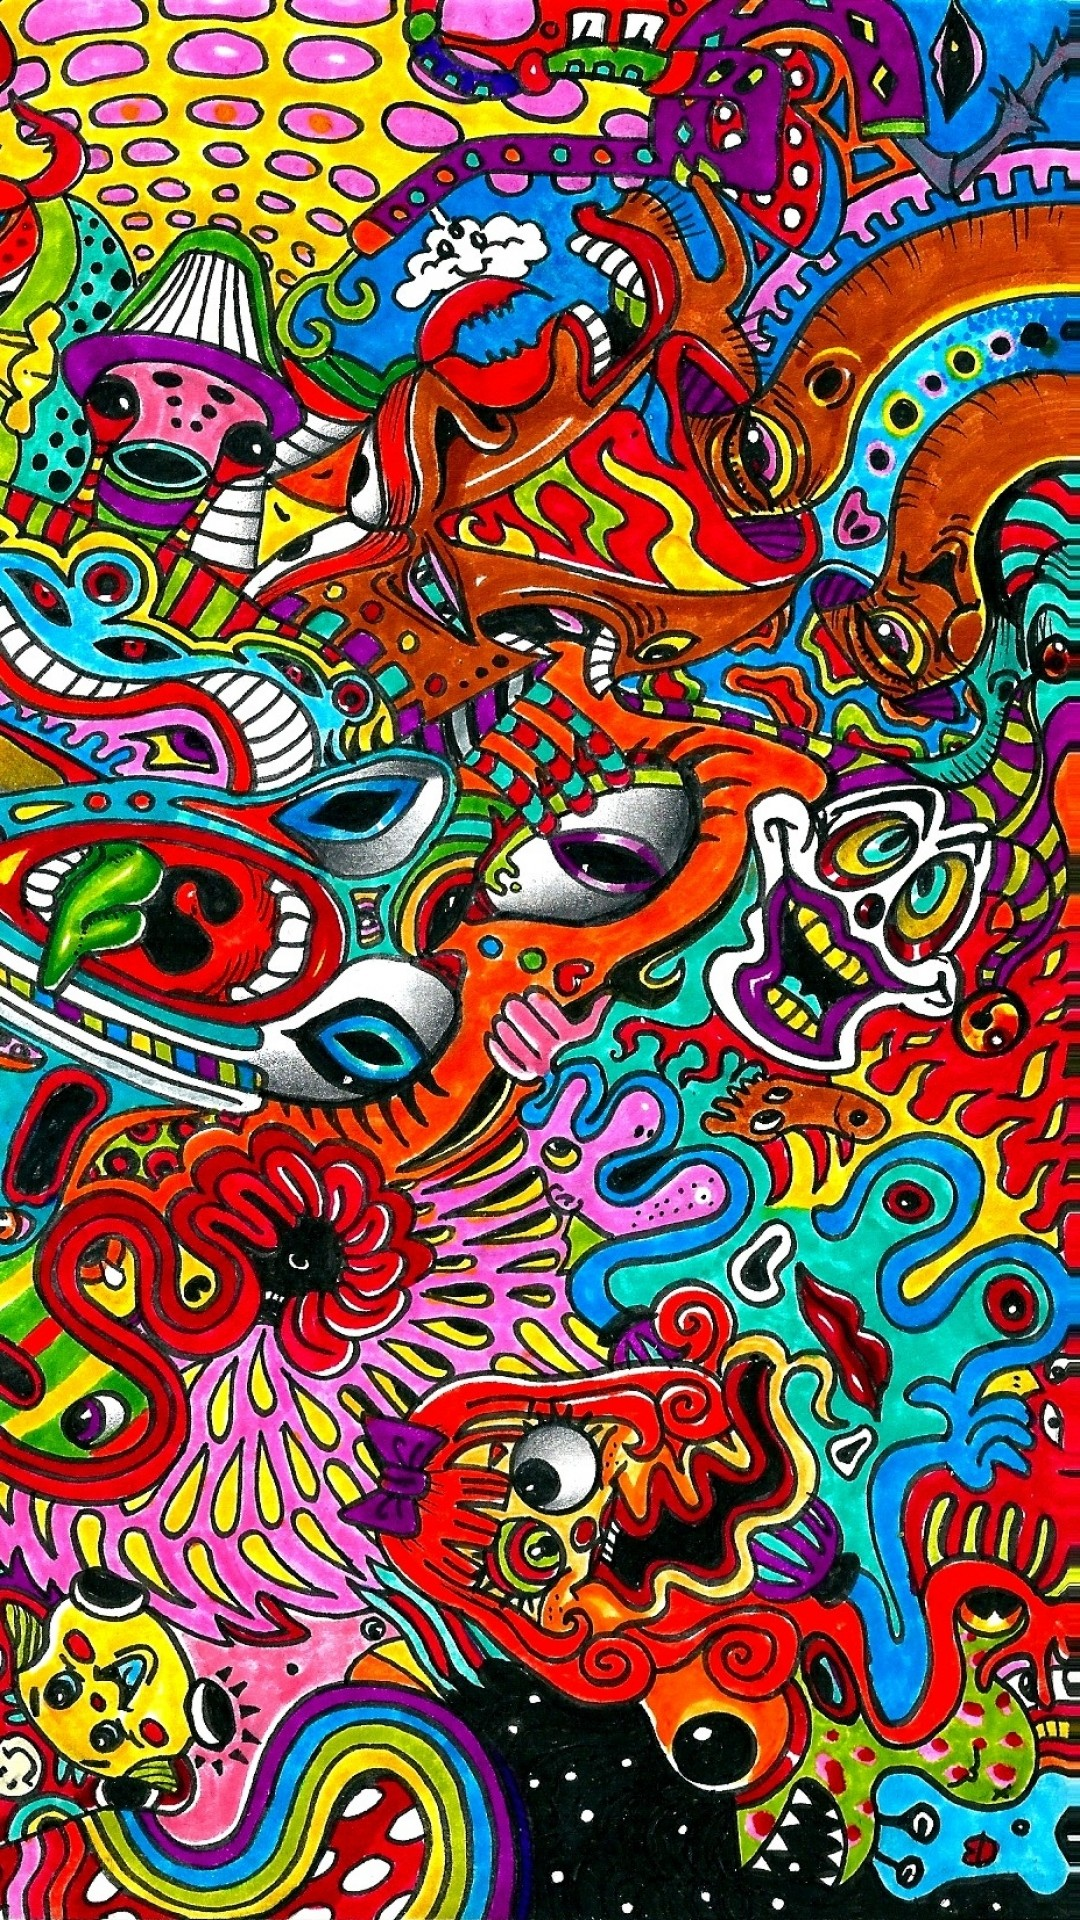 1080x1920 Artistic Psychedelic Colorful Surreal Drawing. Wallpaper 33104